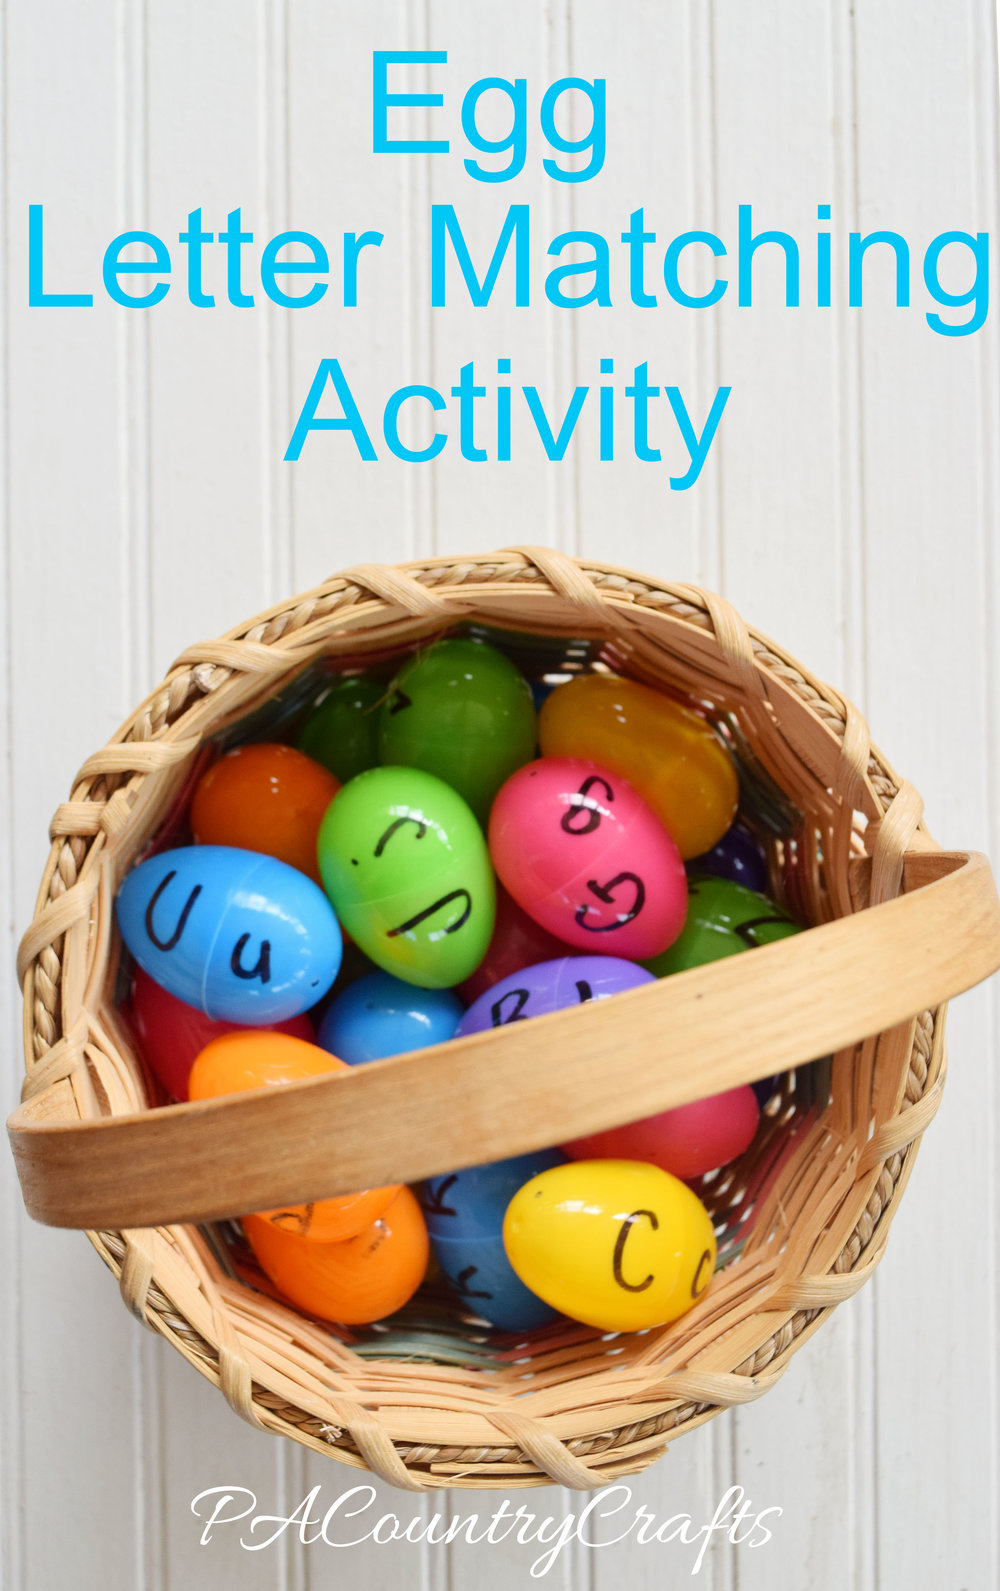 Use plastic eggs for a simple busy bag or learning center activity matching upper and lower case alphabet letters!